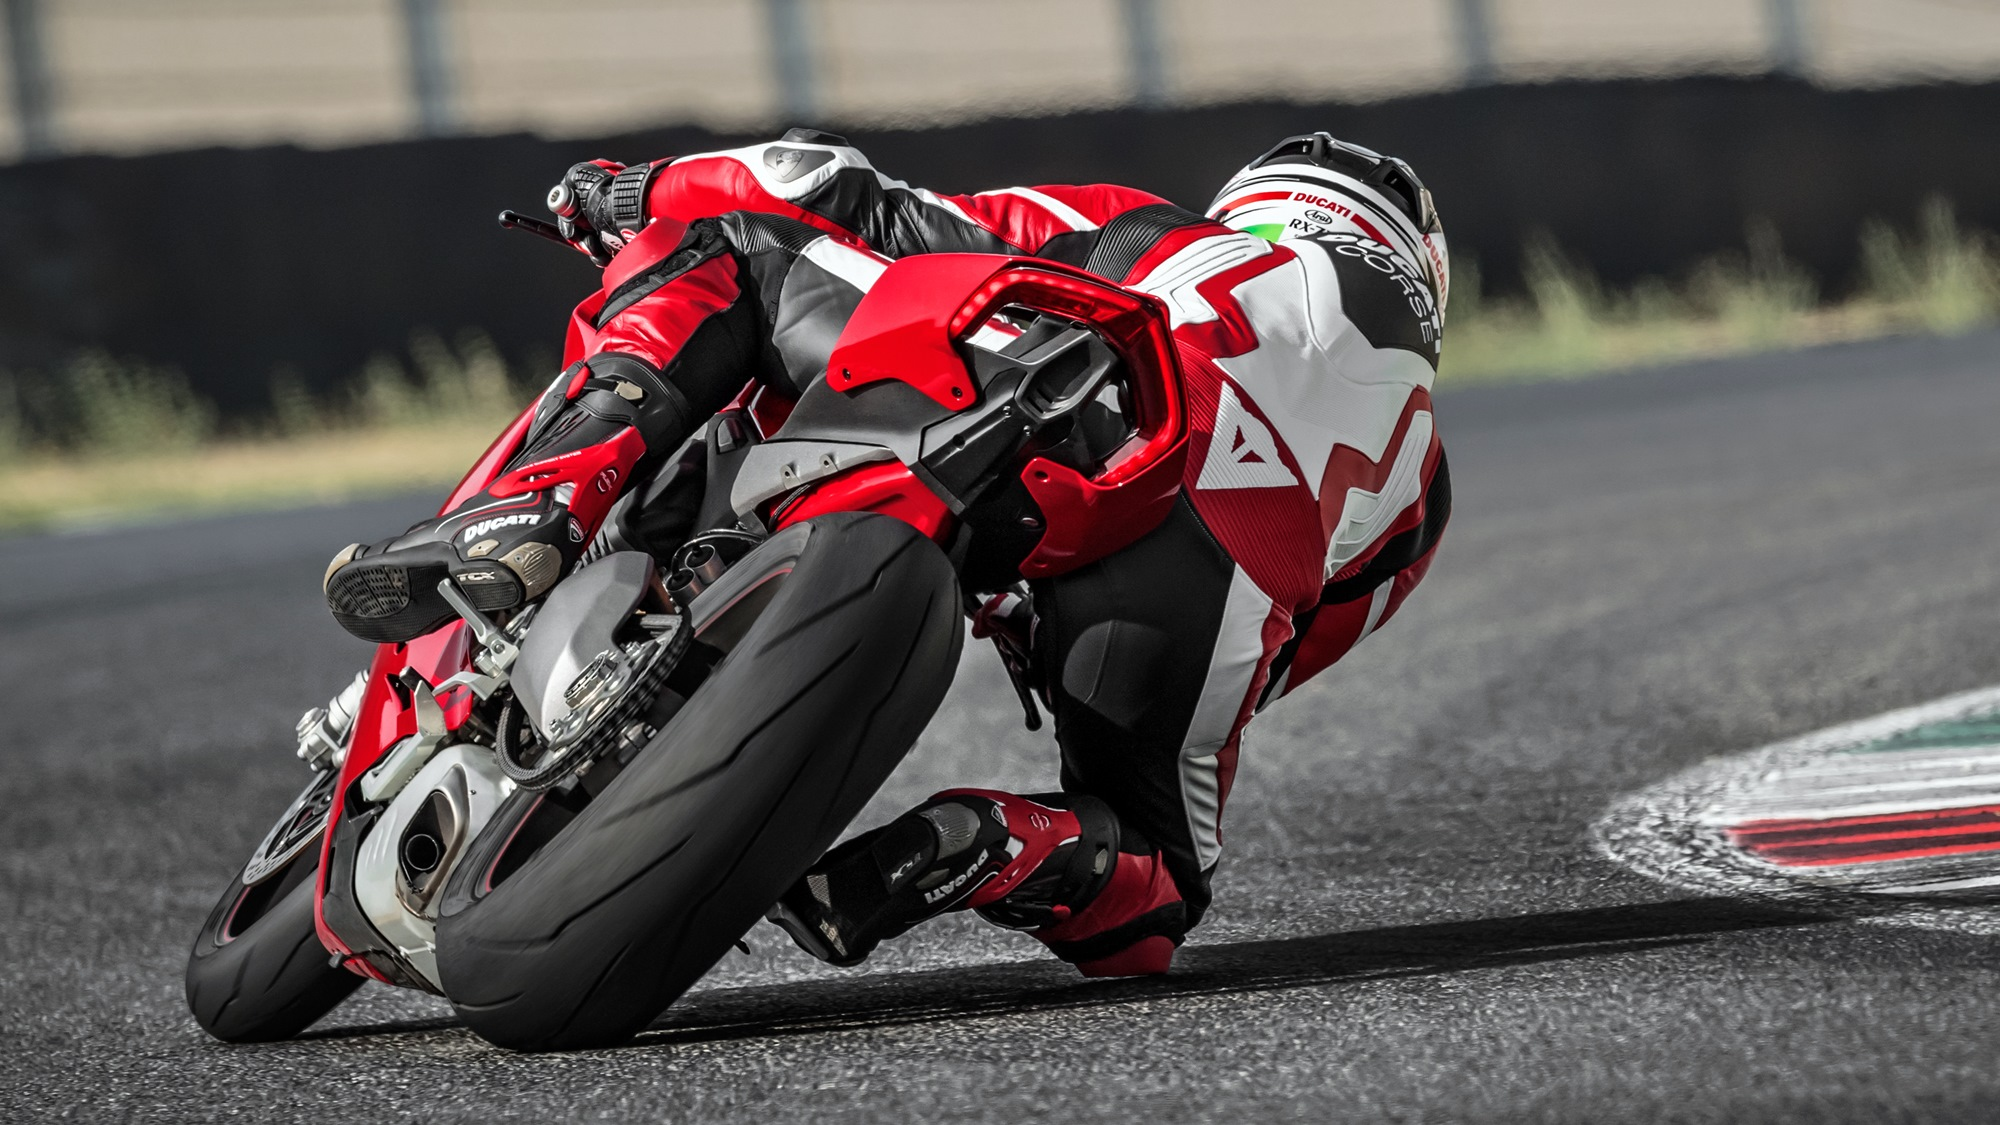 Panigale V4 for India